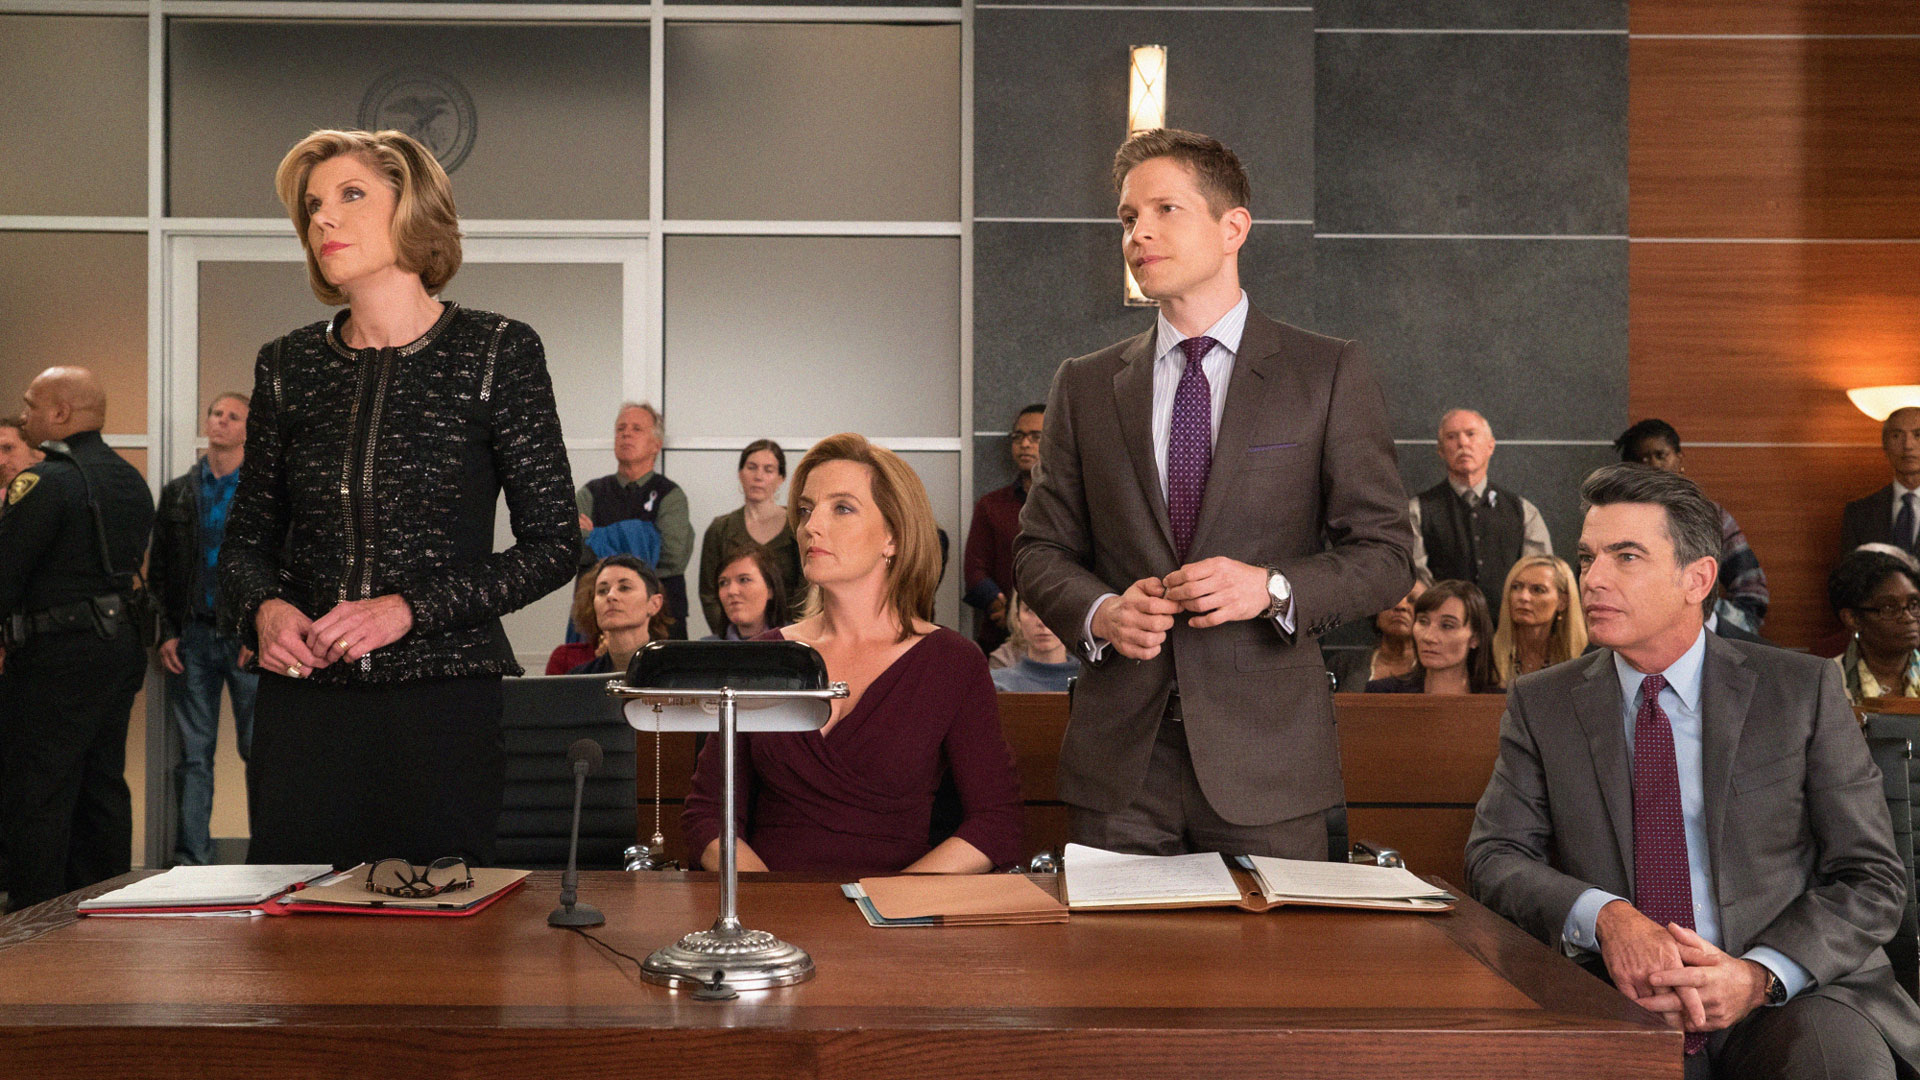 Christine Baranski as Diane Lockhart, Matt Czuchry as Cary Agos, and Peter Gallagher as Ethan Carver